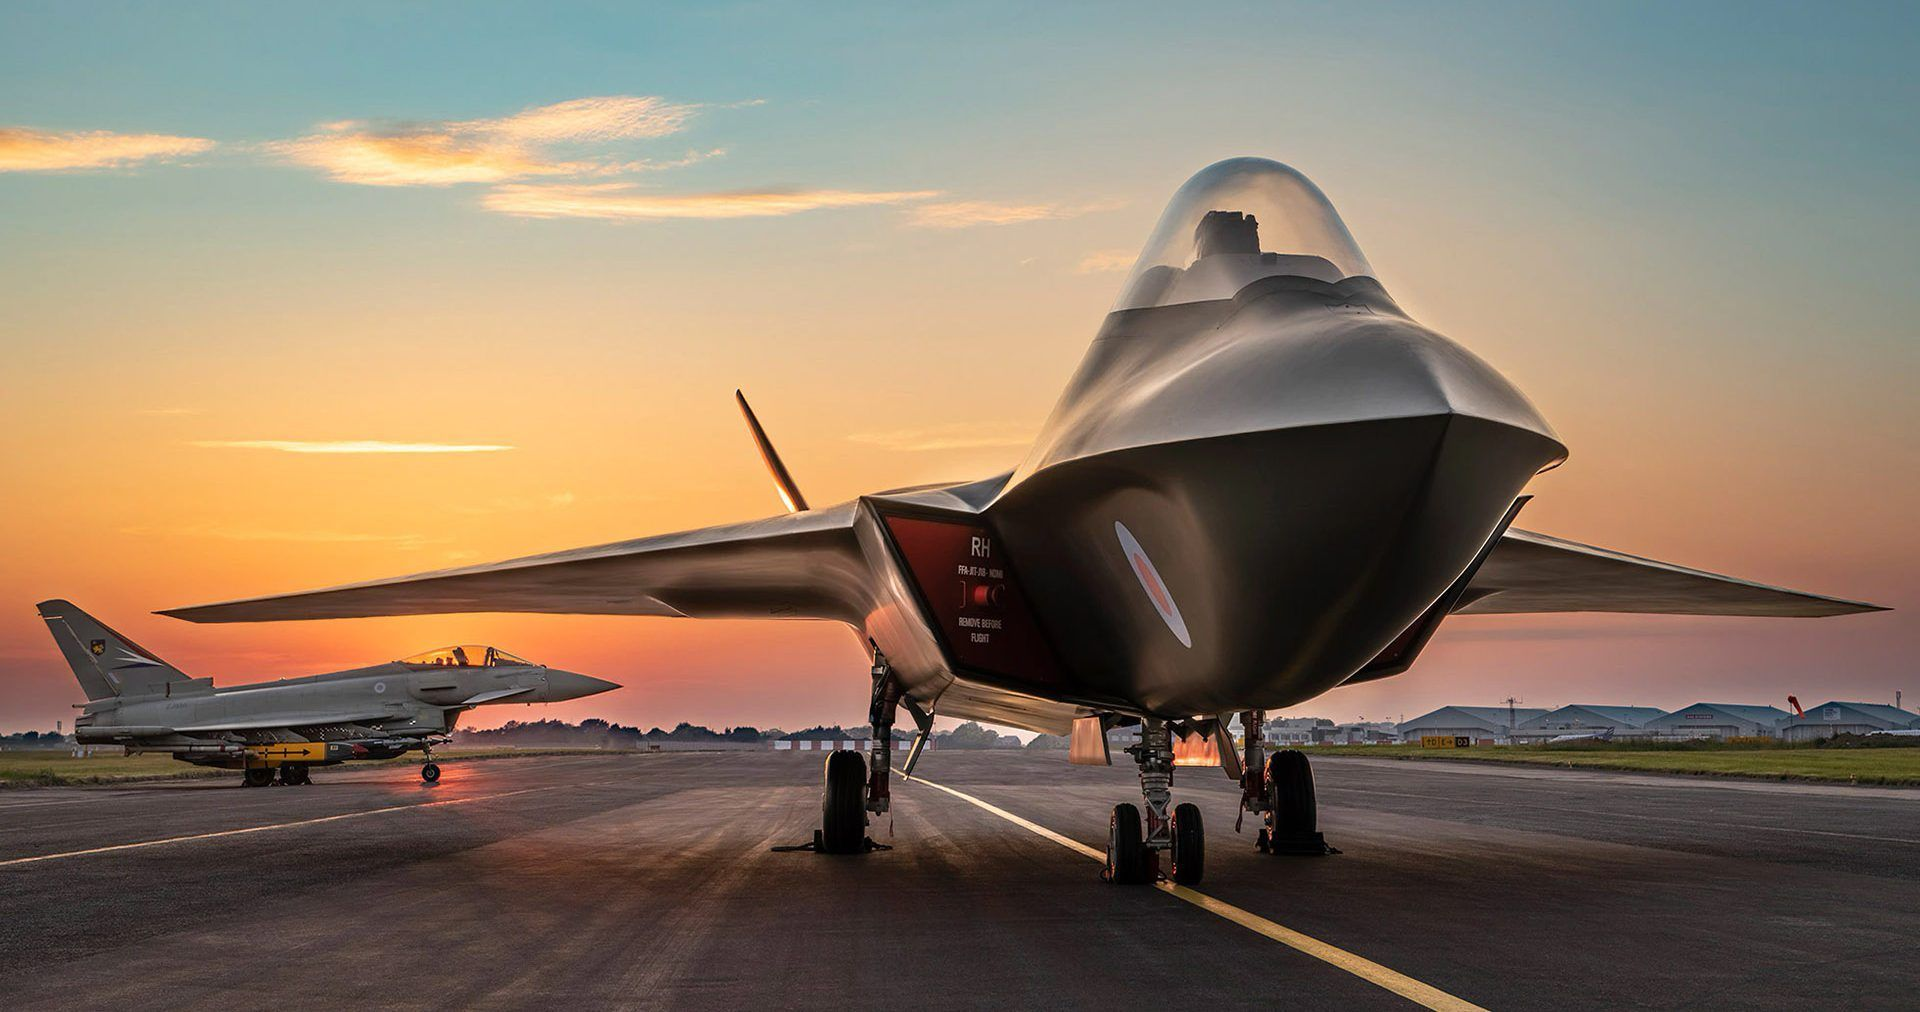 The Future Of Air Power: A Look At The Ultra-Advanced 5th Generation Of Fighter Jets